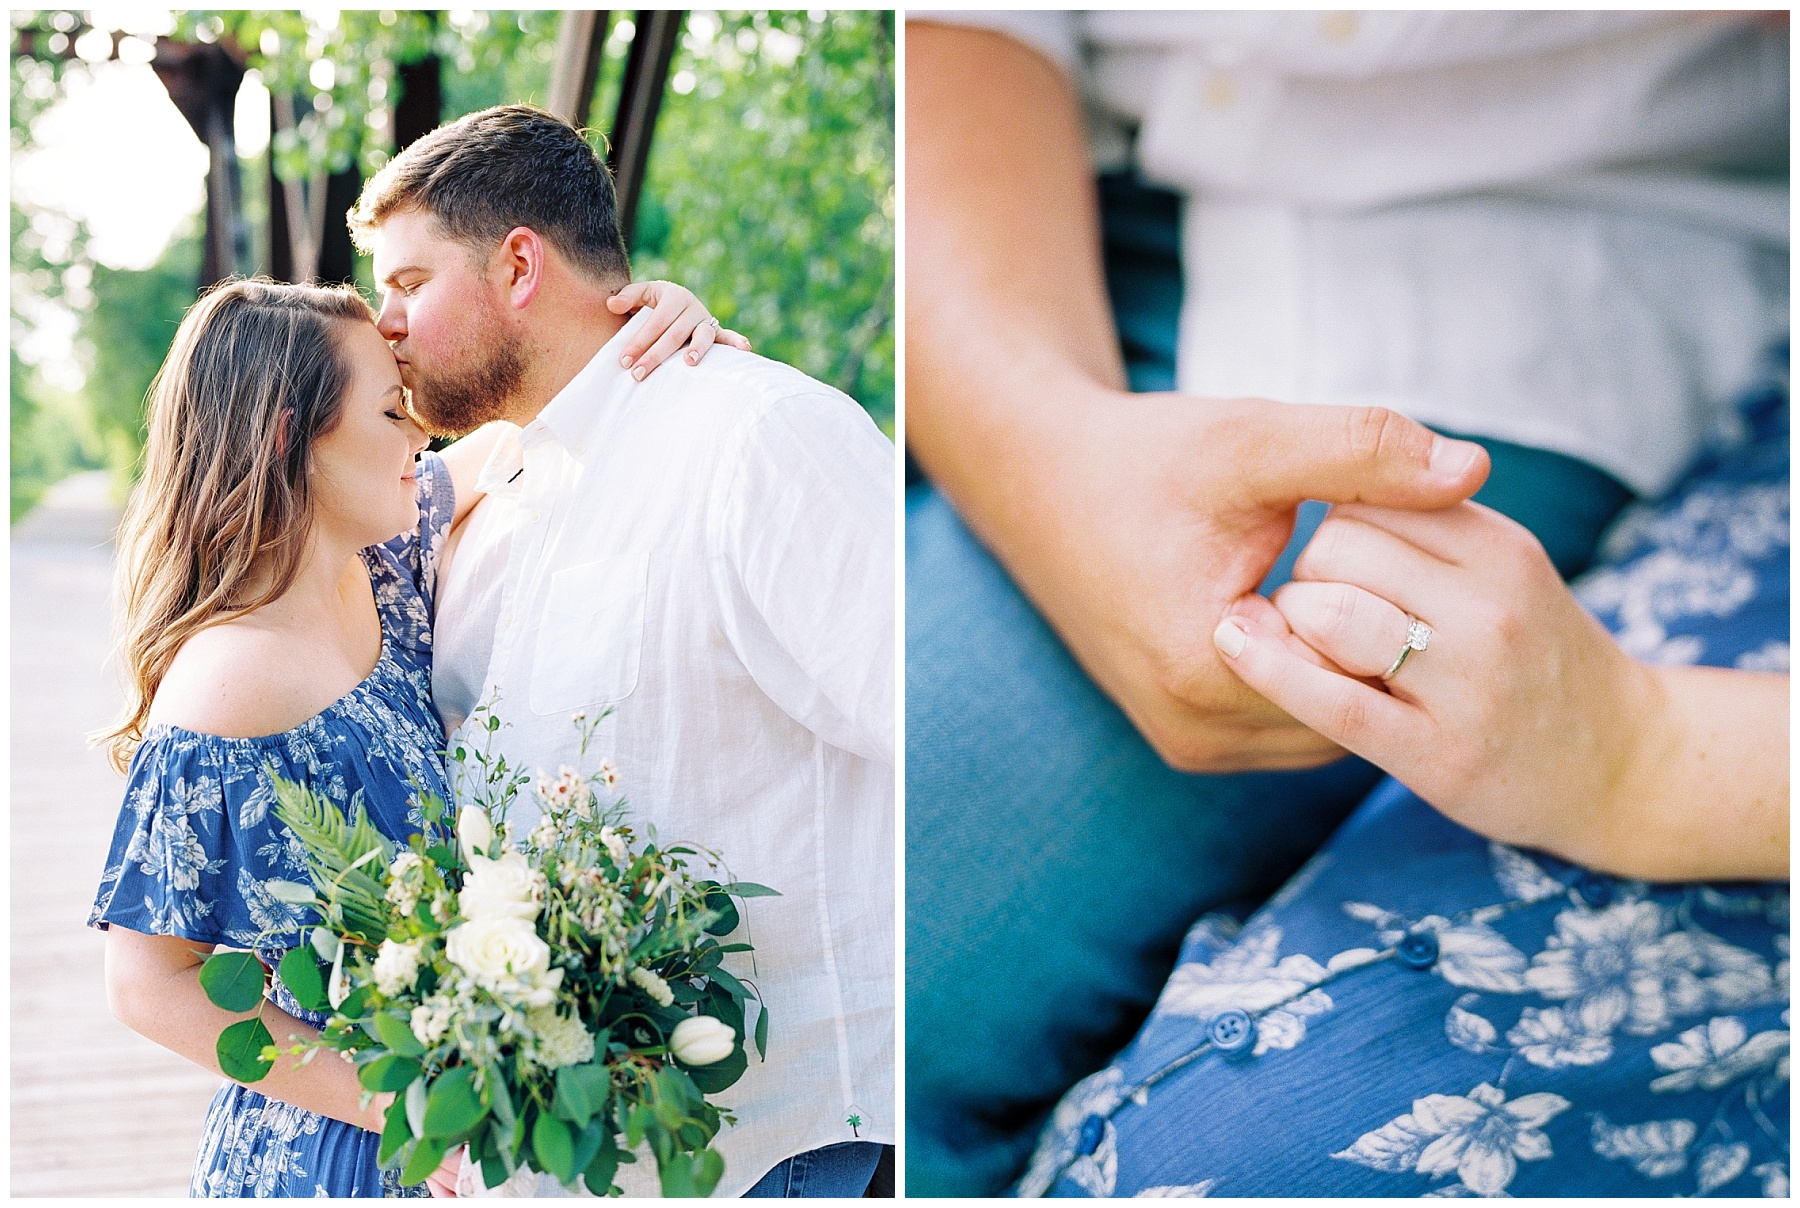 Flirty Spring Engagement Session with Floral Bouquet at Cooper's Landing by Kelsi Kliethermes Photography Best Missouri and Maui Wedding Photographer_0008.jpg